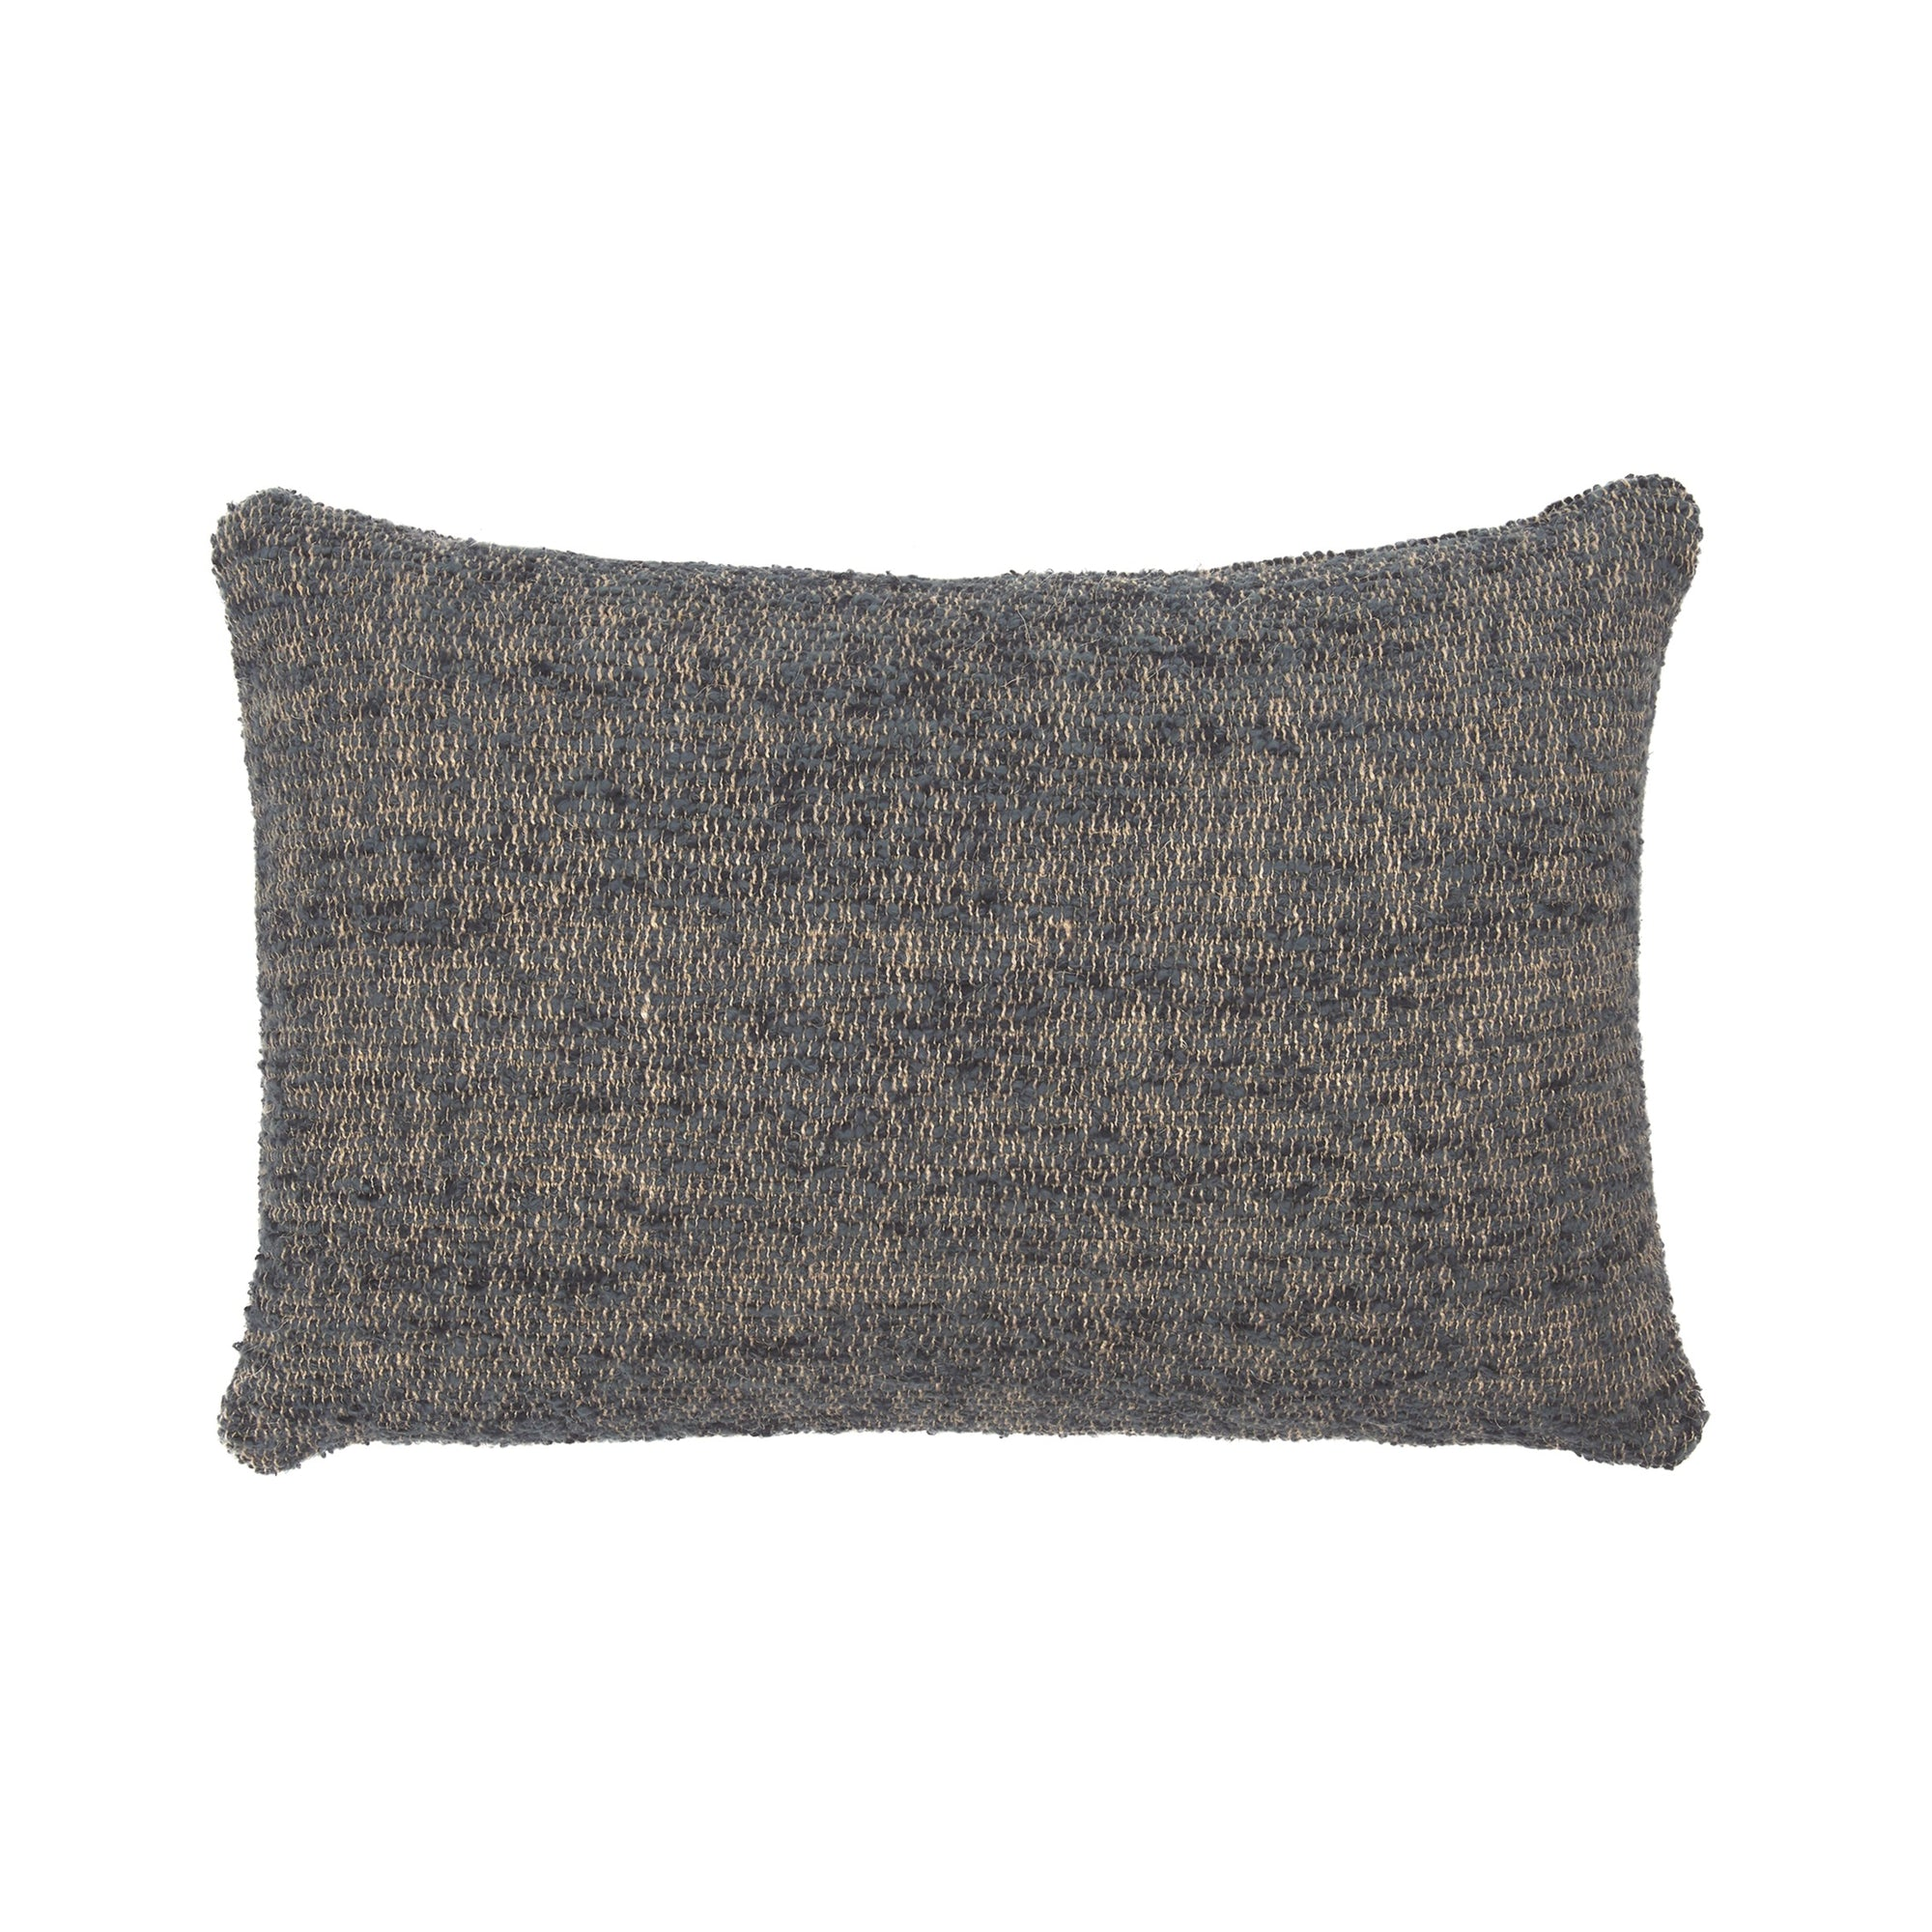 Blue Nomad cushion